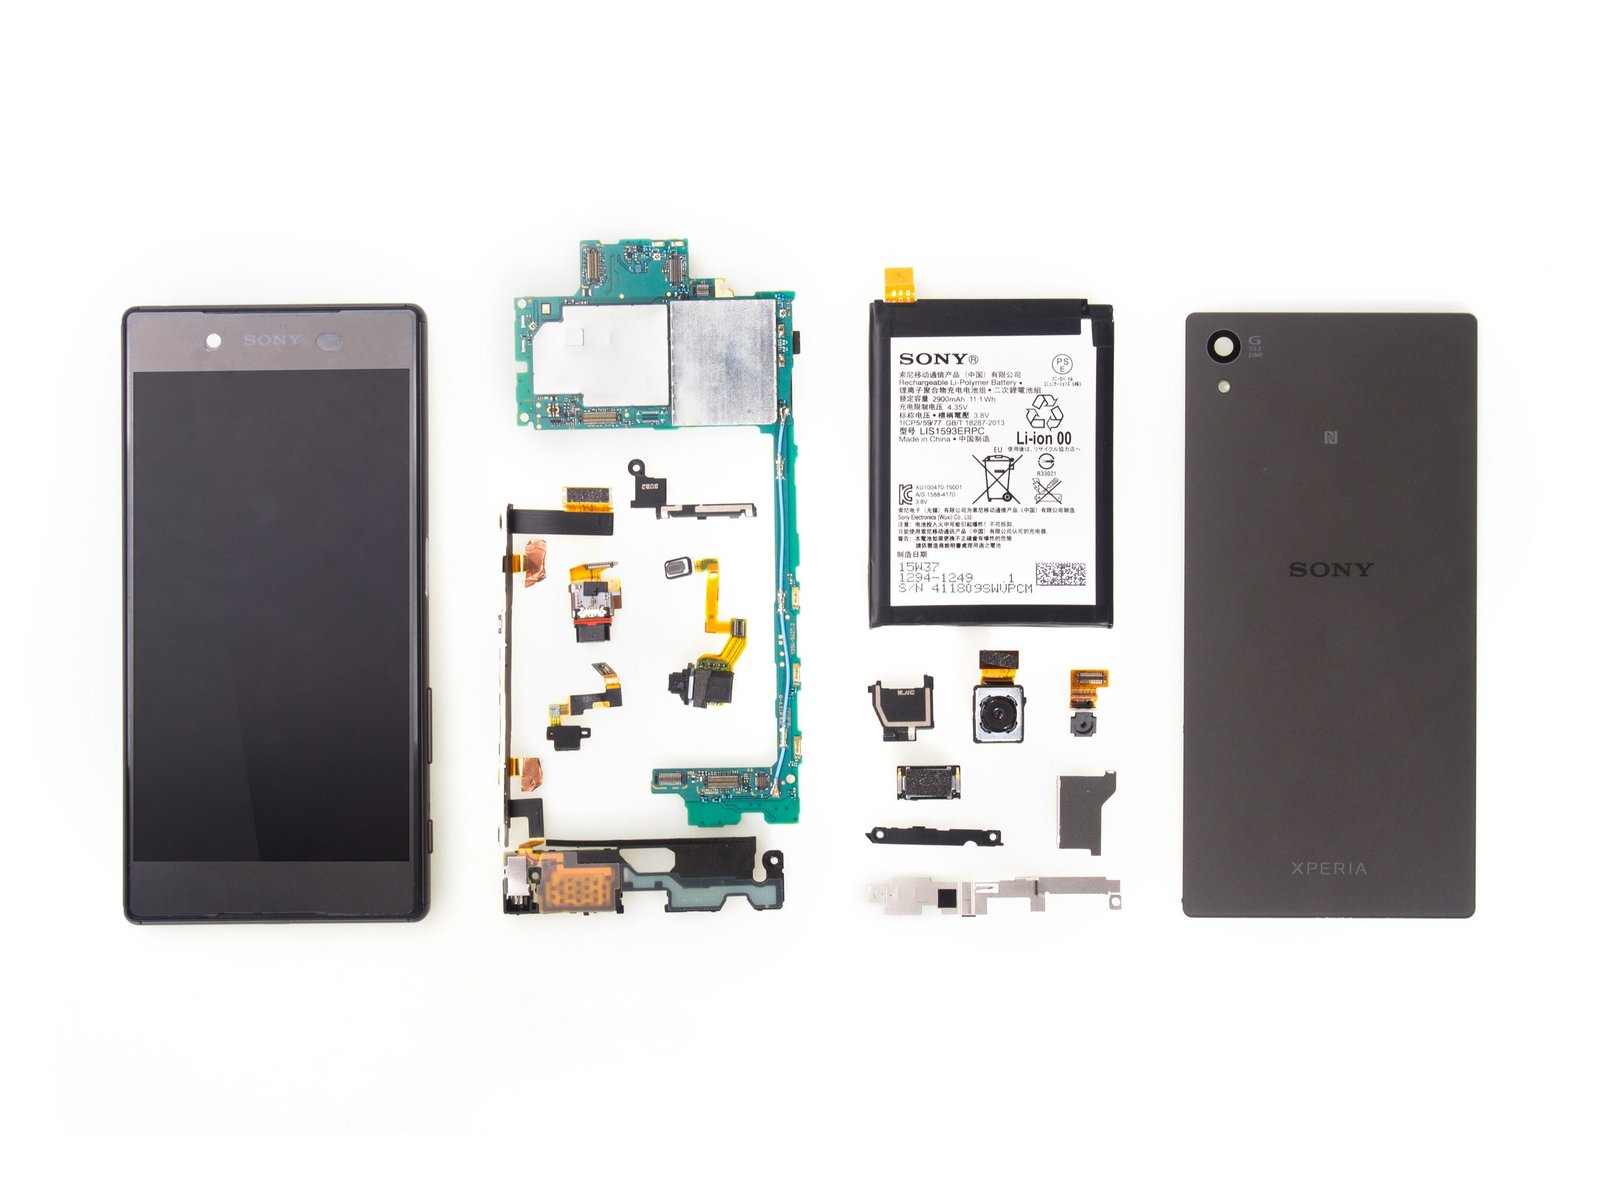 sony xperia c circuit diagram wiring librarysony xperia c circuit diagram